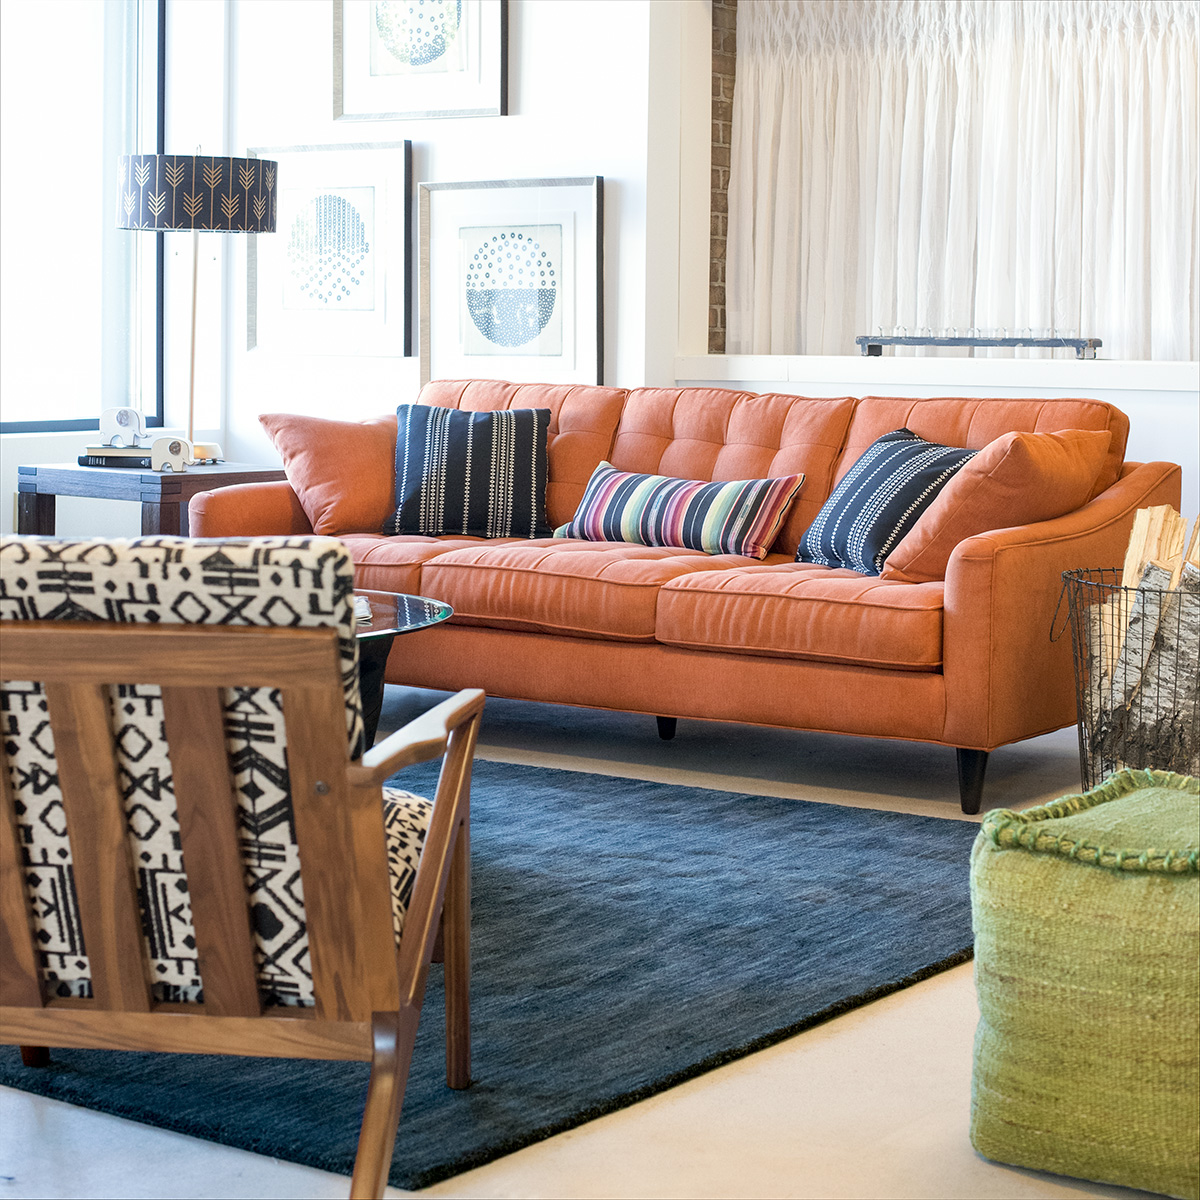 cheerful modern living room with orange mid-century sofa and exposed wood ethnic print chair.  Love this look - so fun!